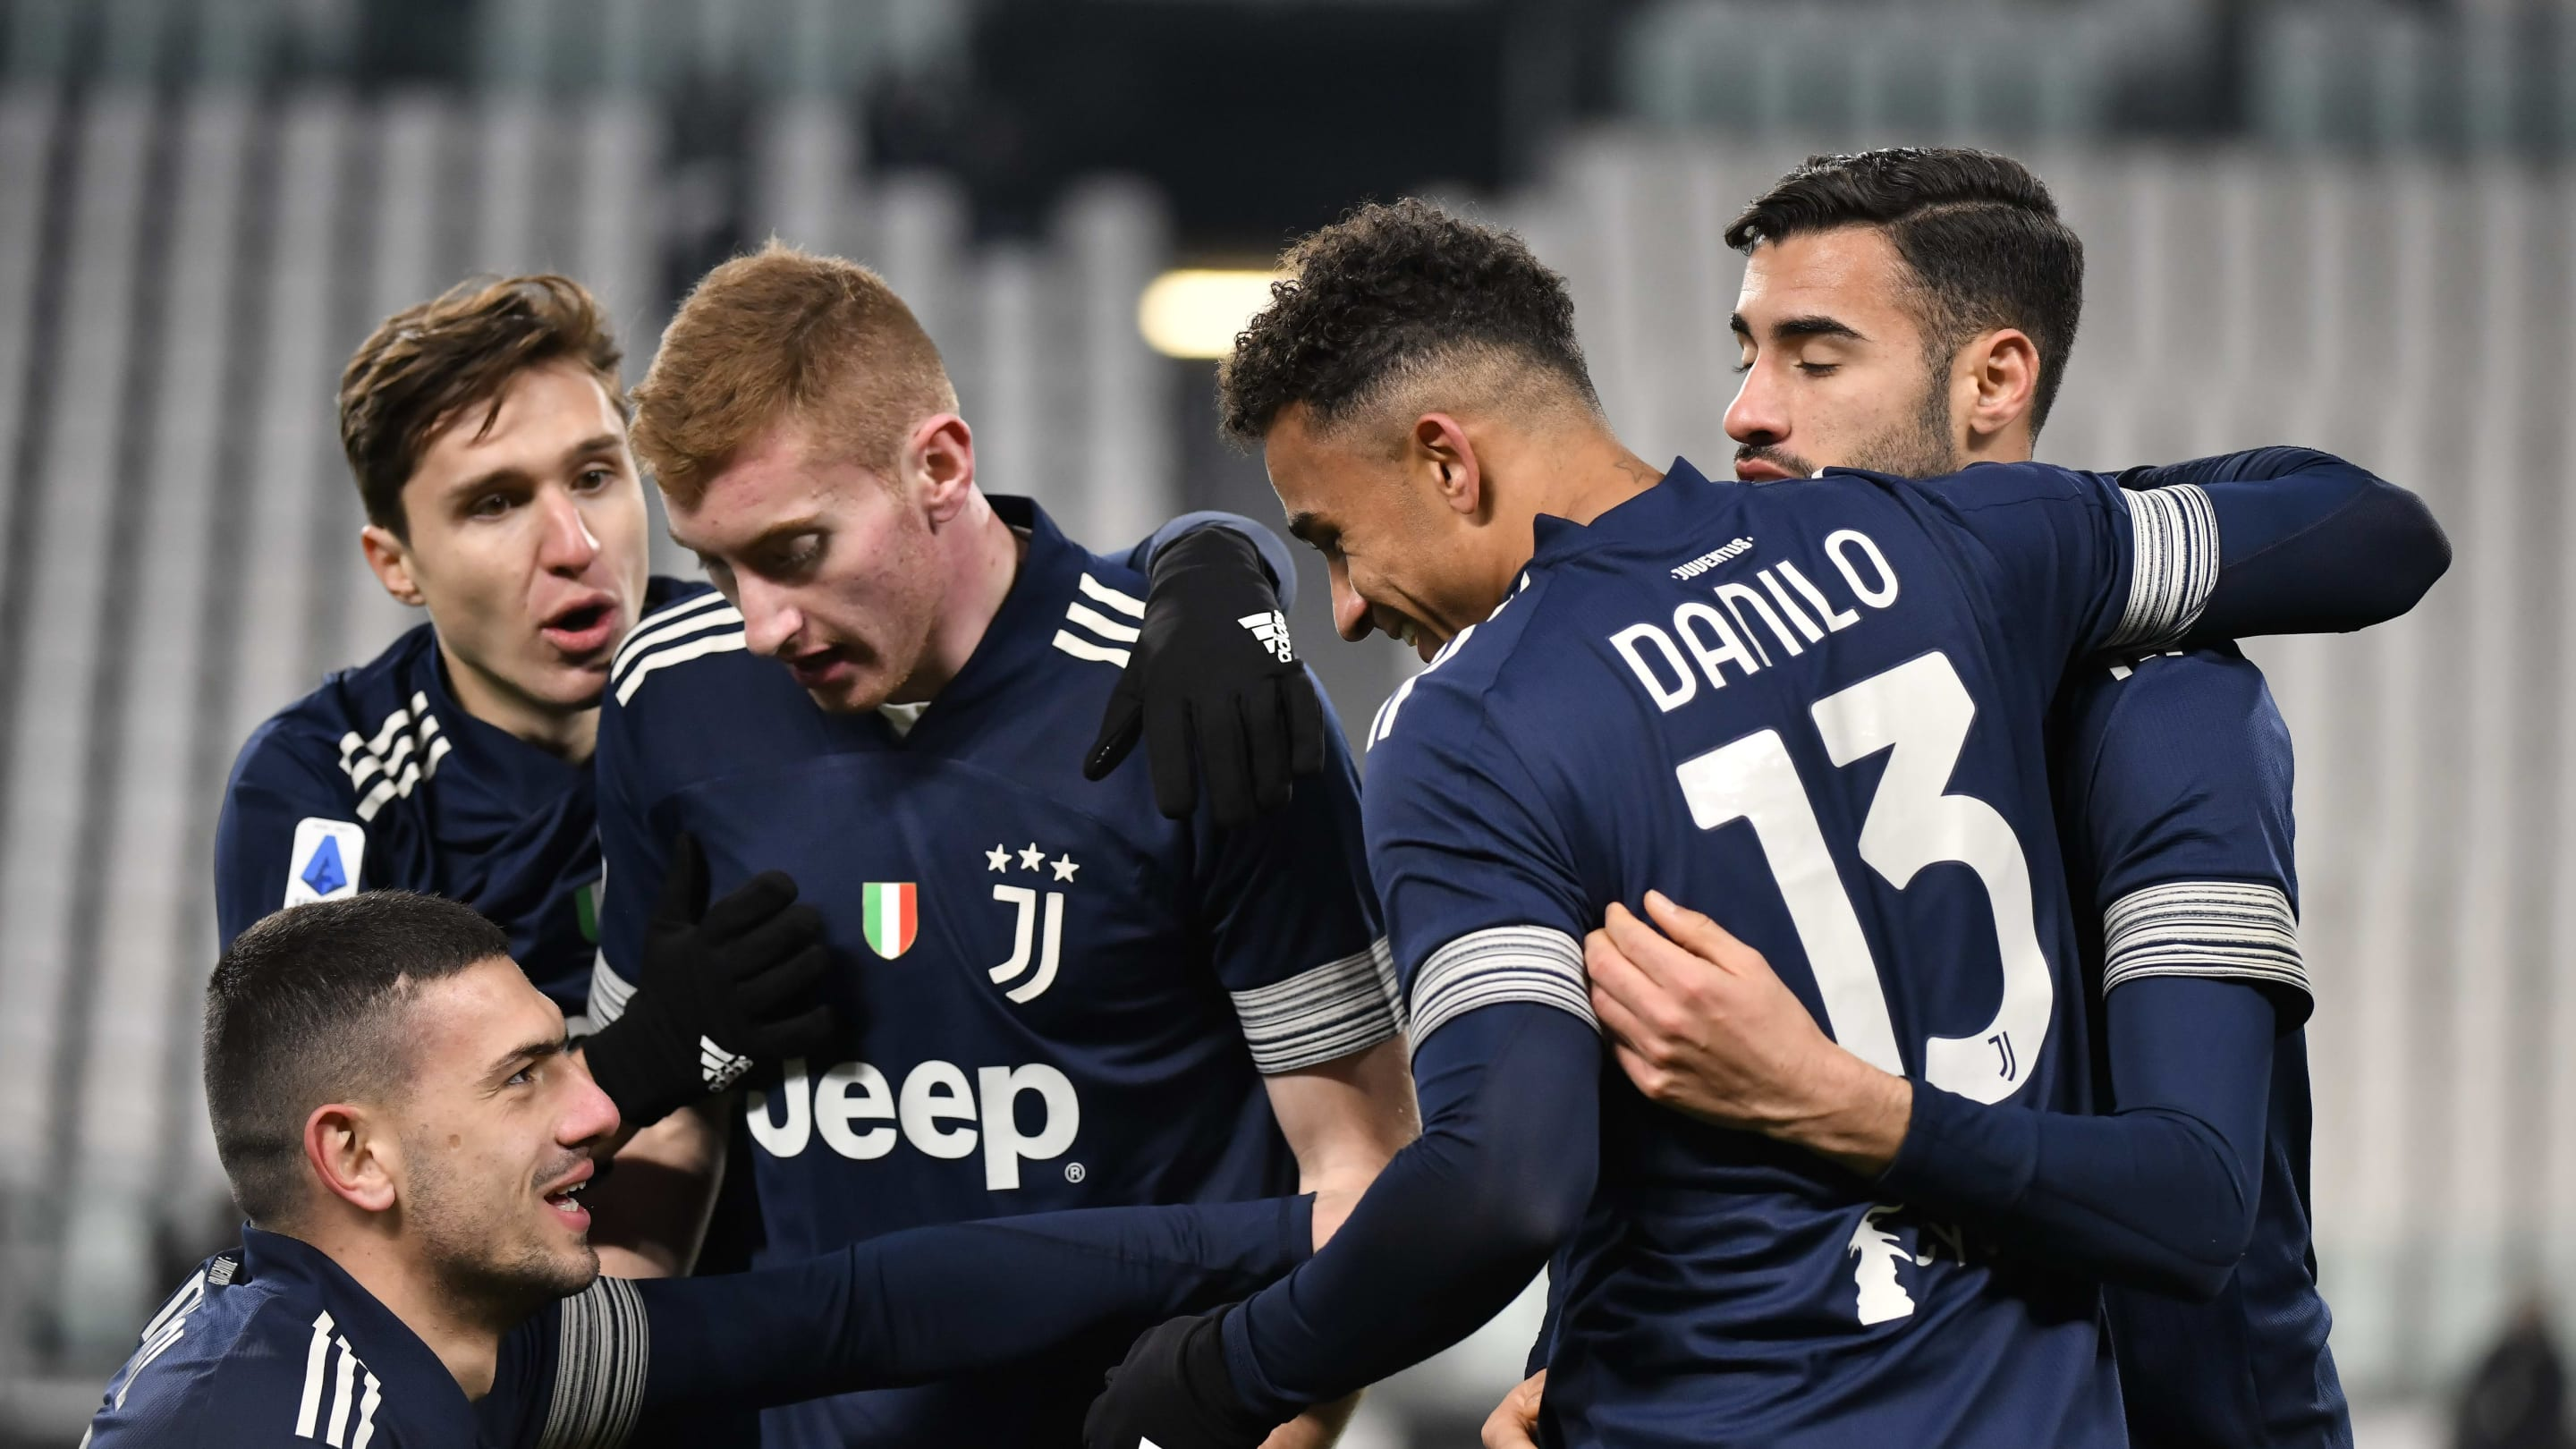 Juventus 3-1 Sassuolo: Player ratings as Old Lady go fourth in Serie A